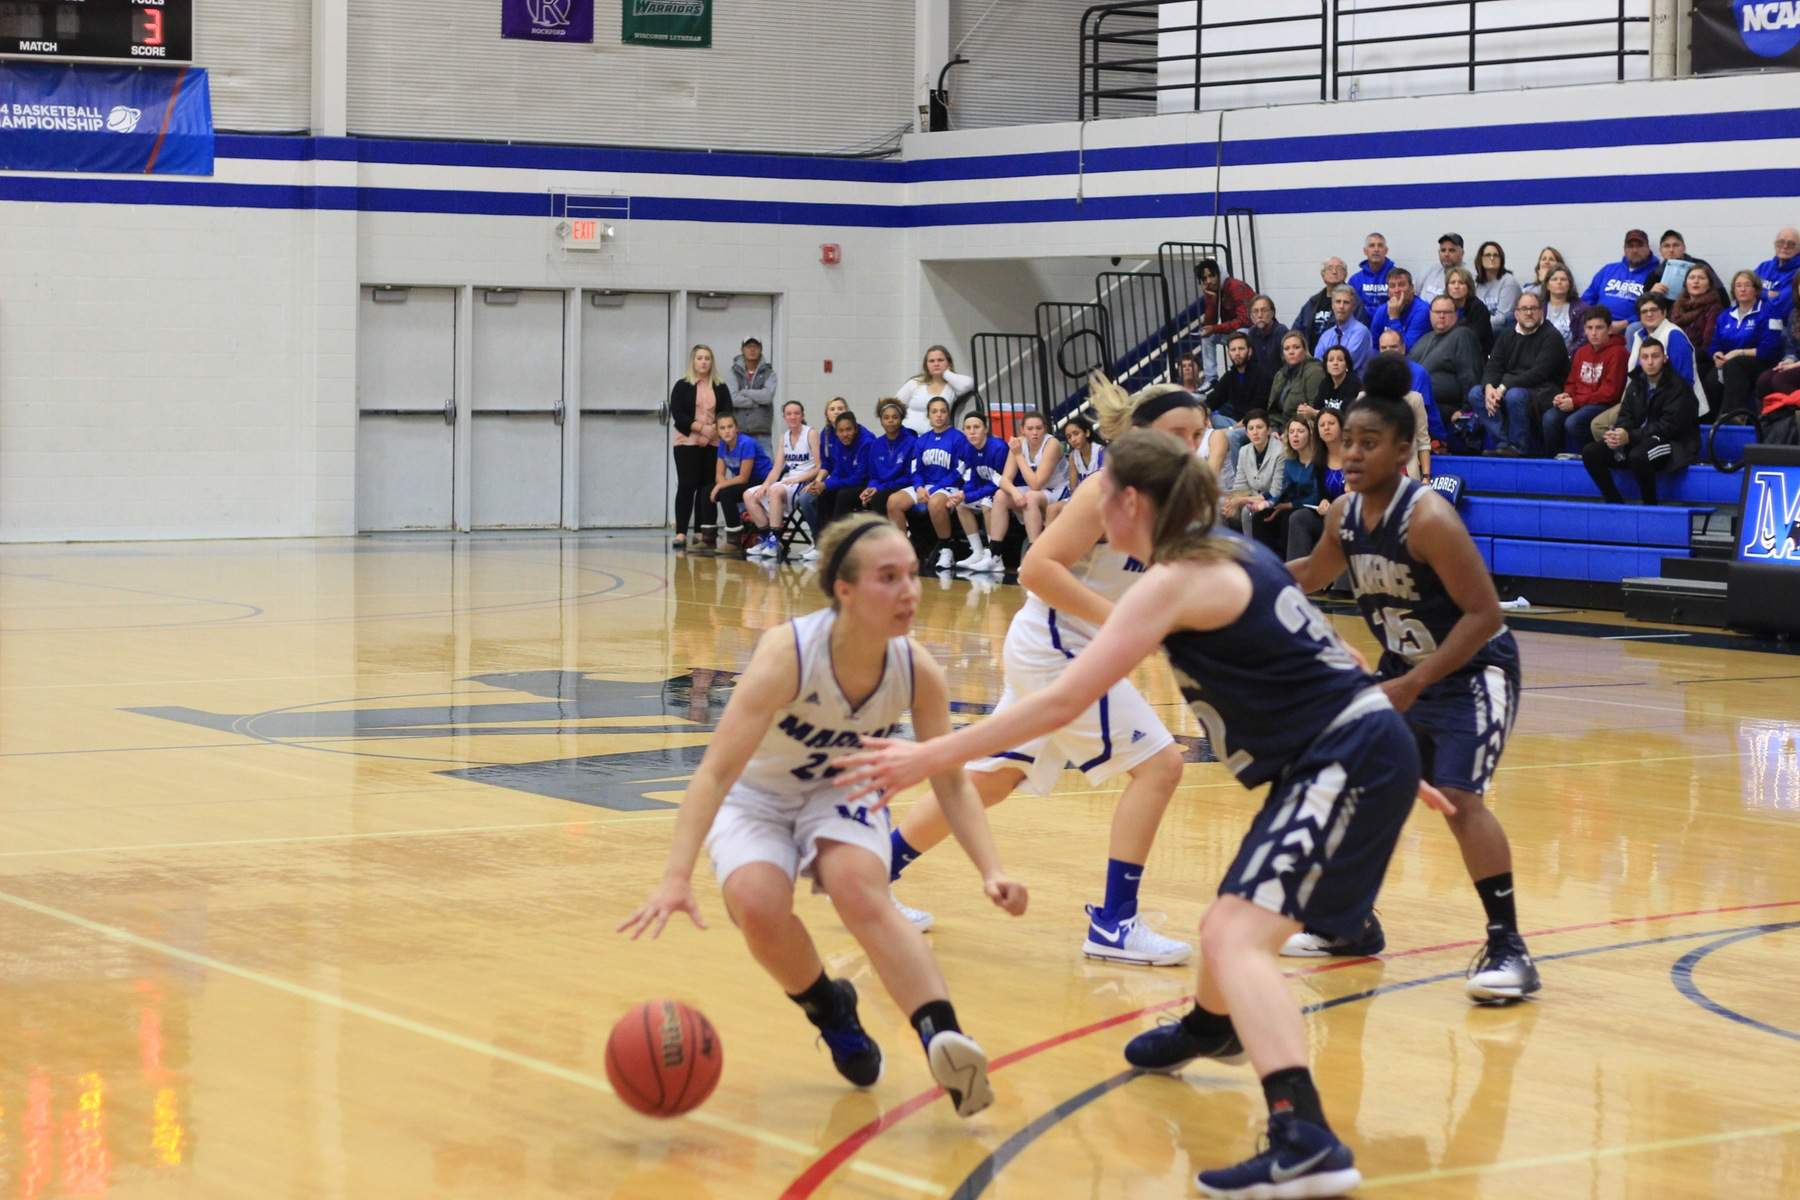 Dominant defense leads Marian women's basketball past Mount Mary